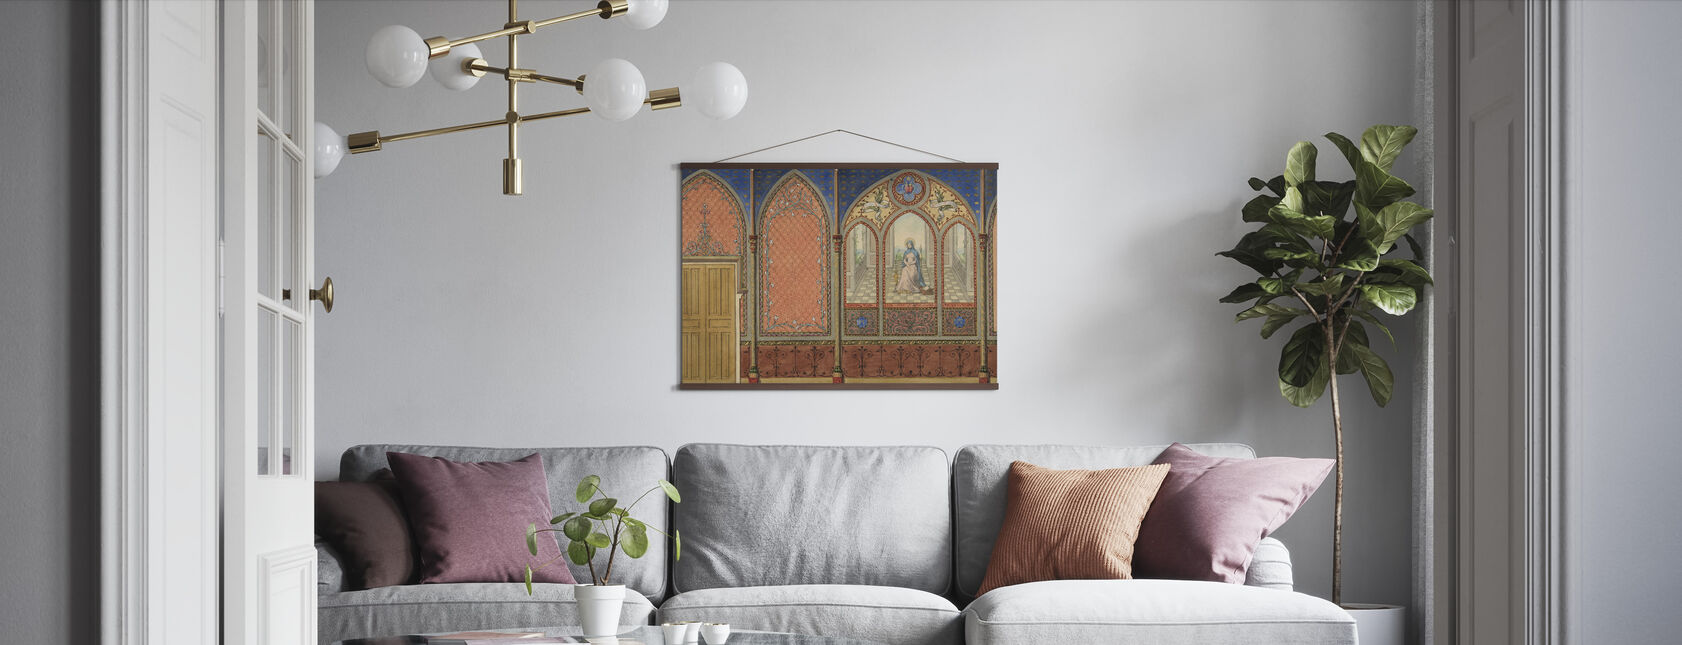 Elevation of a Church - Jules Edmond Charles Lachaise - Poster - Living Room